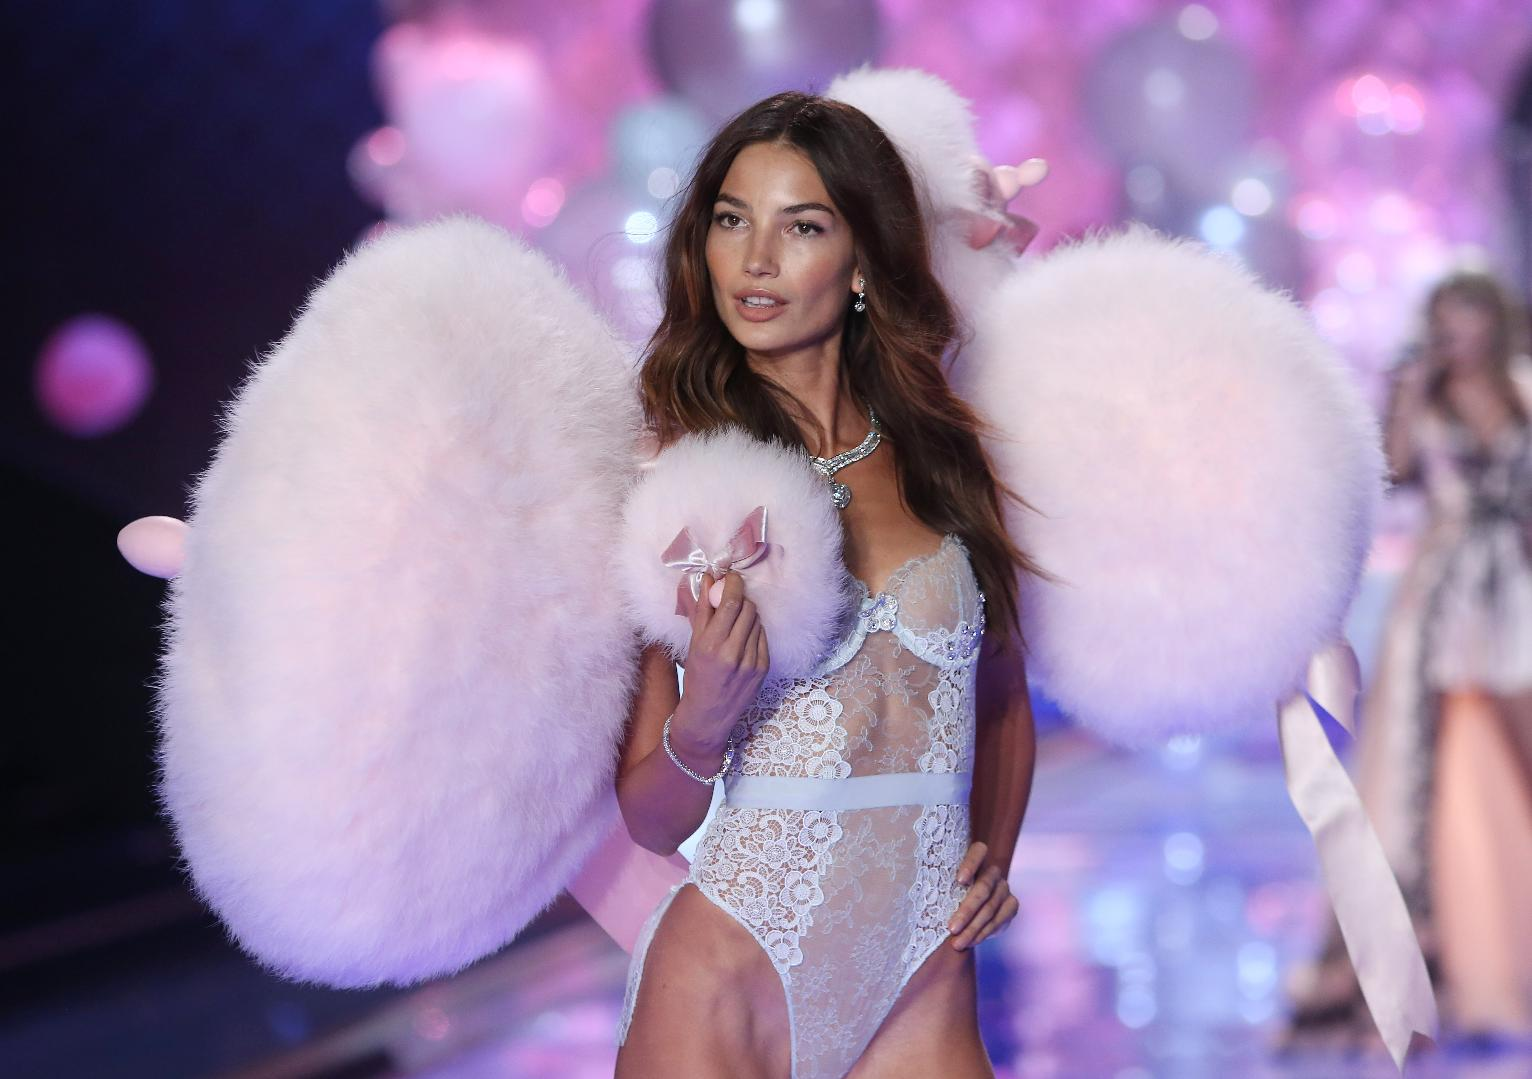 """victoria secret economic environment Victoria's secret earnings don't impress, autonomous vehicles strike fear  the  gig economy sizzles, autonomous cars fizzle and victoria's secret  """"the dark  store environment, the conspicuous sexuality of the offer and."""